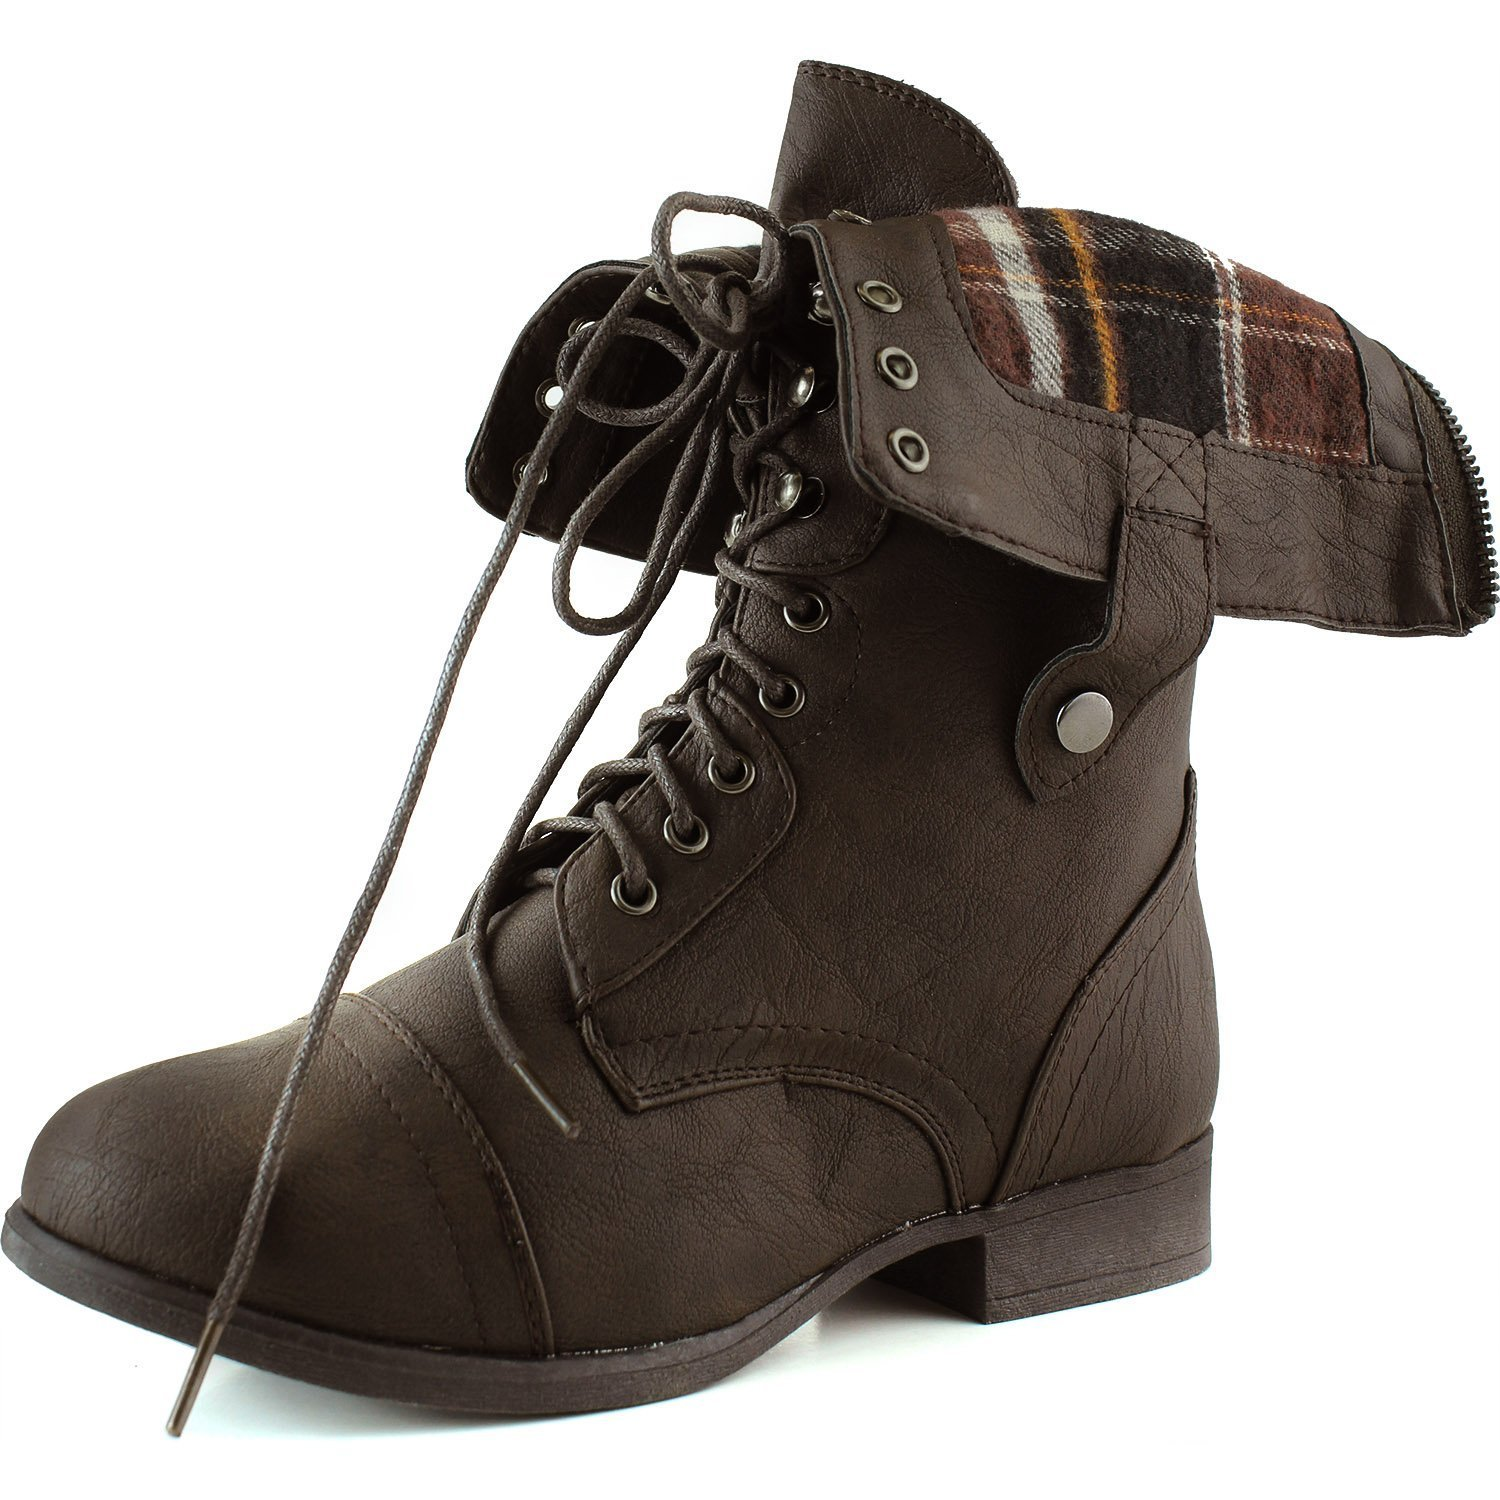 Top Moda Women's Military Lace up Fold-able Ankle Bootie Mid Knee Combat Boots,Smart-1 Brown (Two-Way Foldable) 9